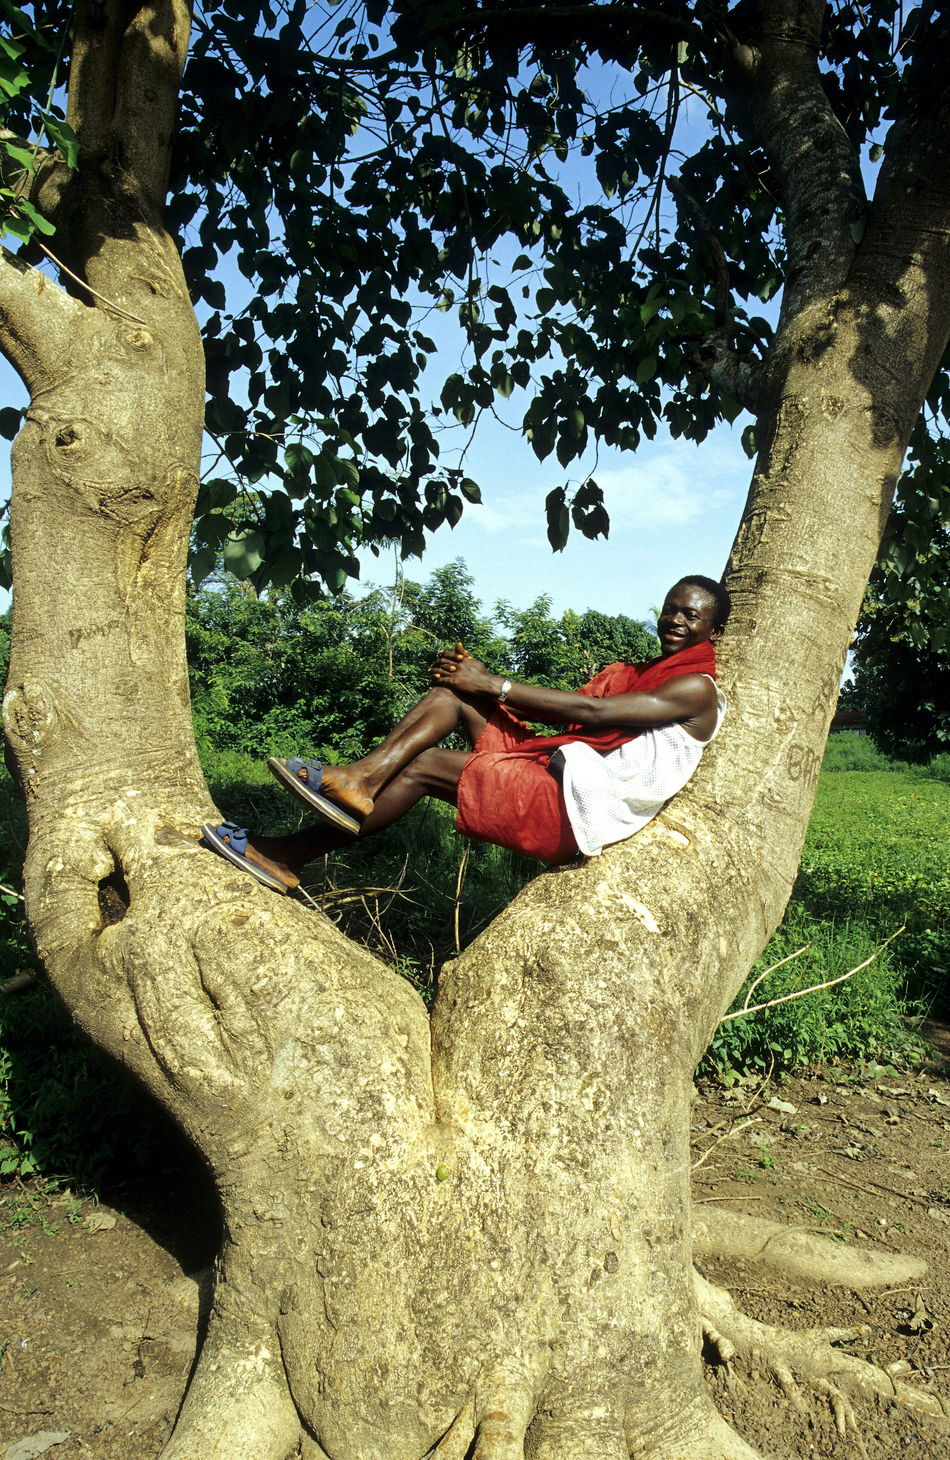 Adult Adults Only Baobab Baobab Tree Branch Branches Day Full Length Guinea Leaves Leisure Activity Lifestyles Man Man In Tree  Man Resting Nature Outdoors People Real People Sky Split Trunk Tree Trunk